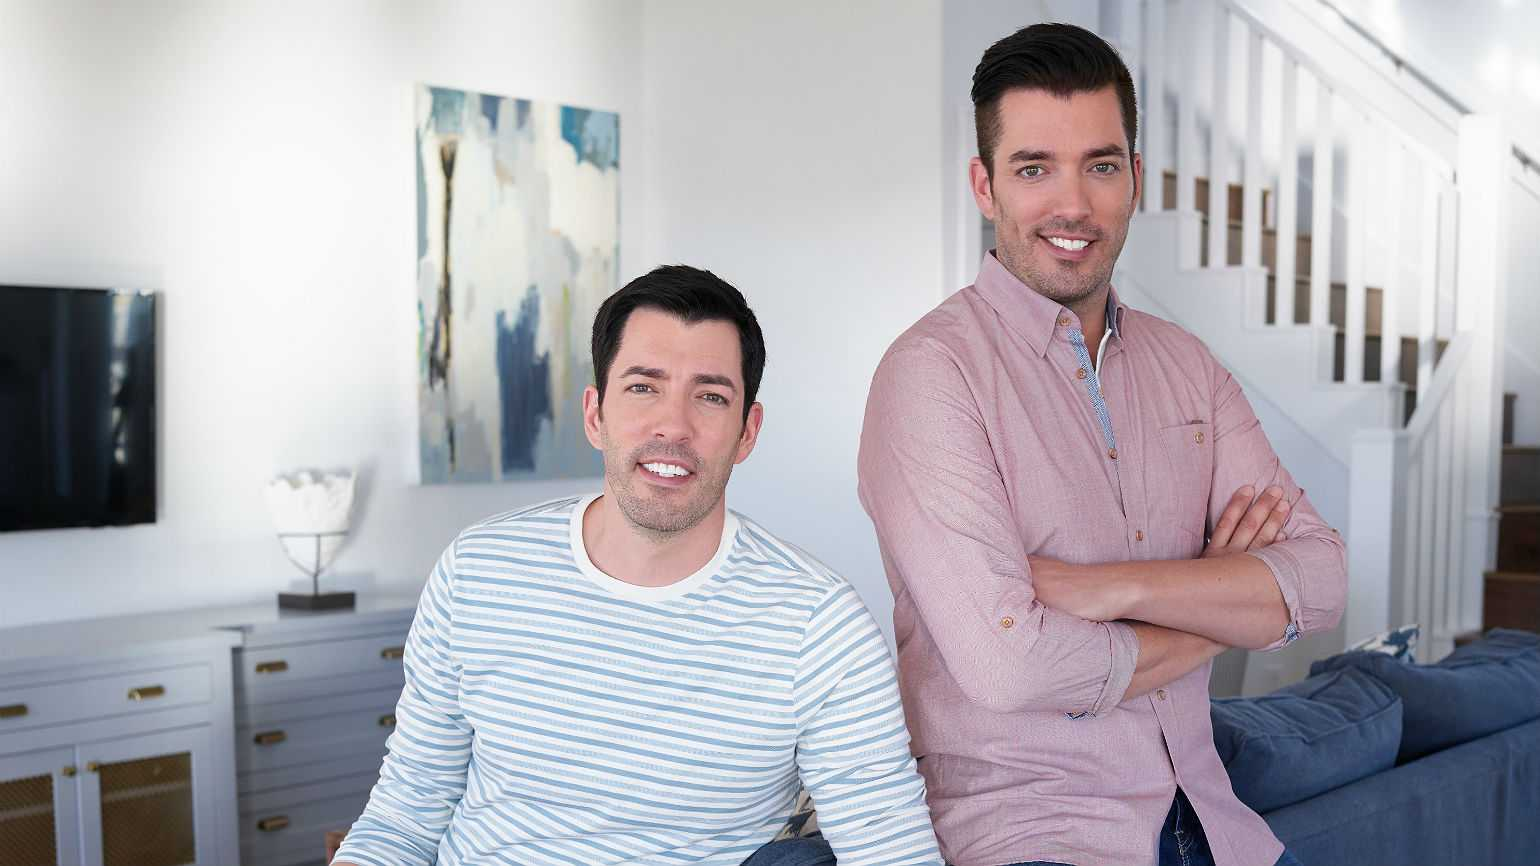 The Property Brothers' Lessons in Renovating and Giving Back